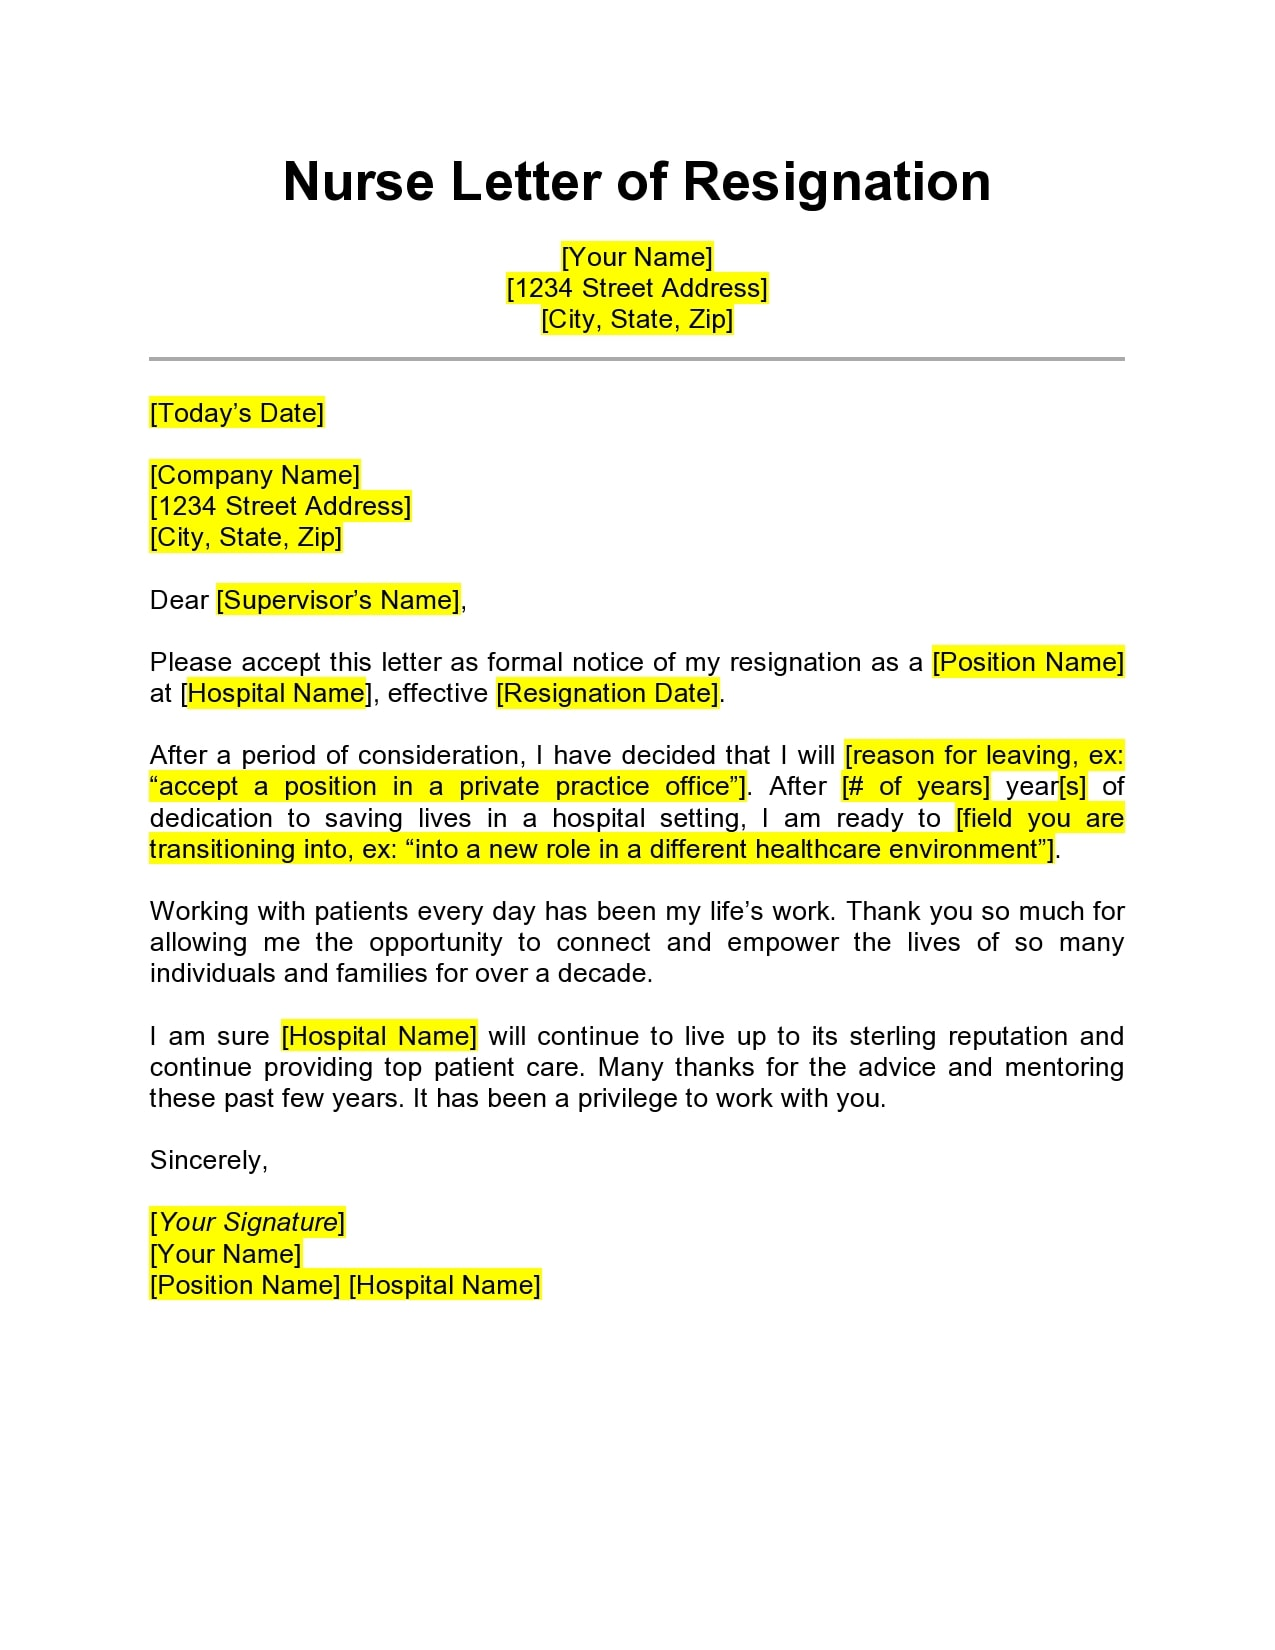 nursing resignation letter 03